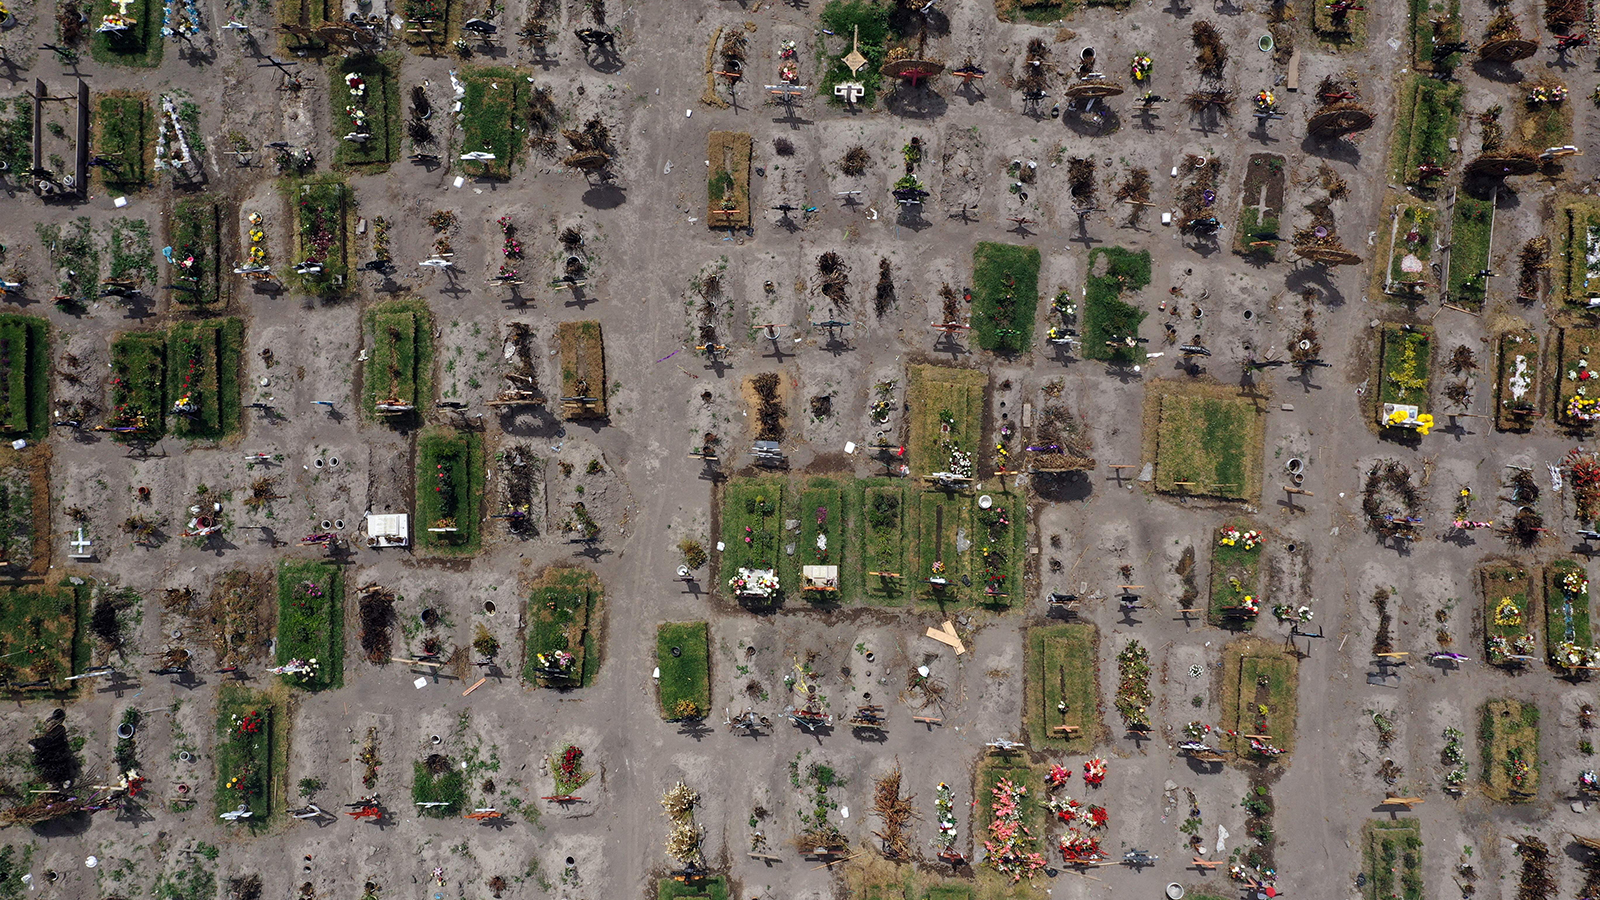 Aerial view of graves at the special area for Covid-19 victims of the Municipal Pantheon of Valle de Chalco, Mexico, on July 28.